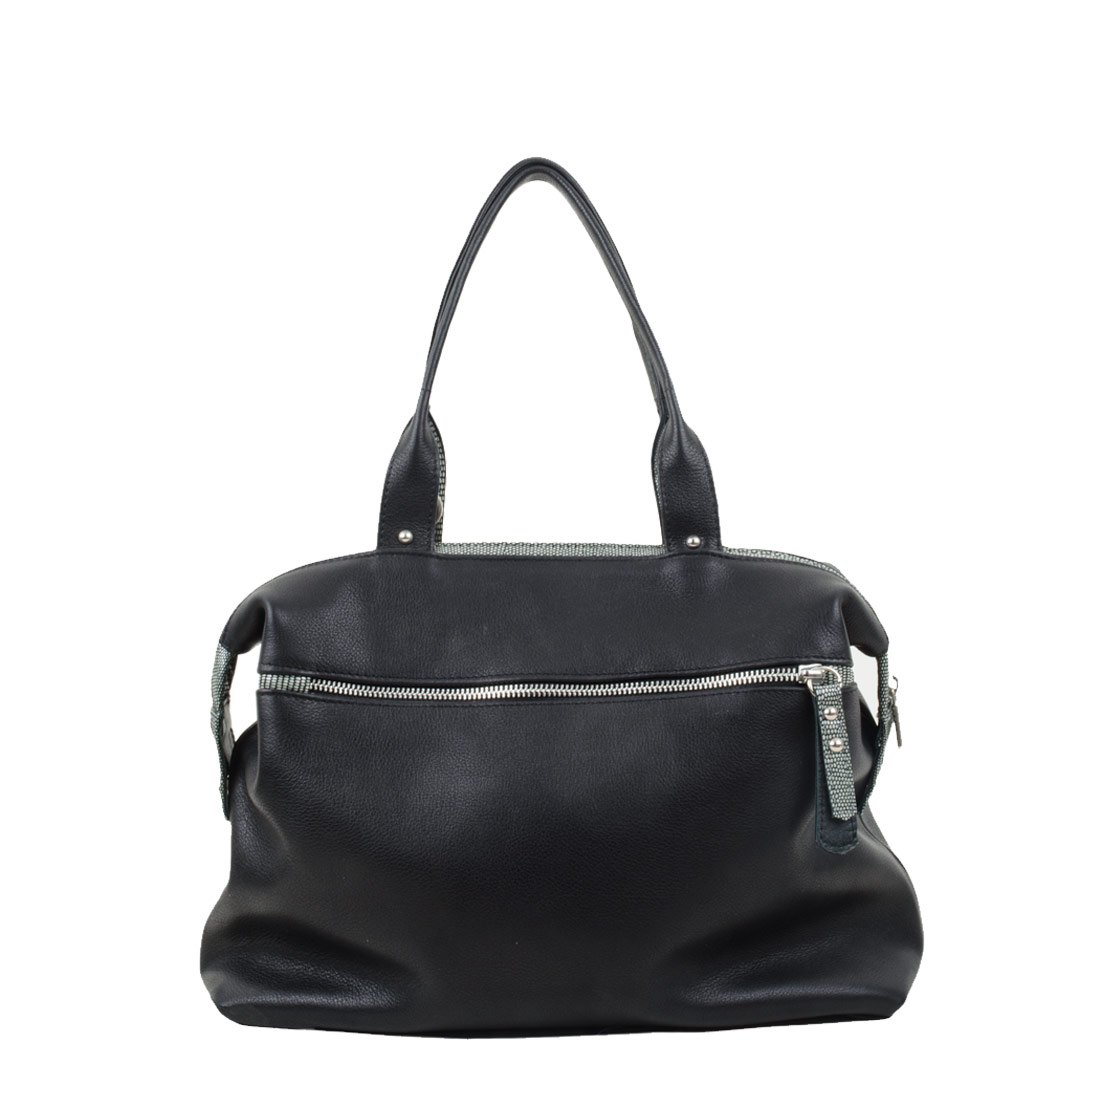 Grace Black Leather Tote Bag